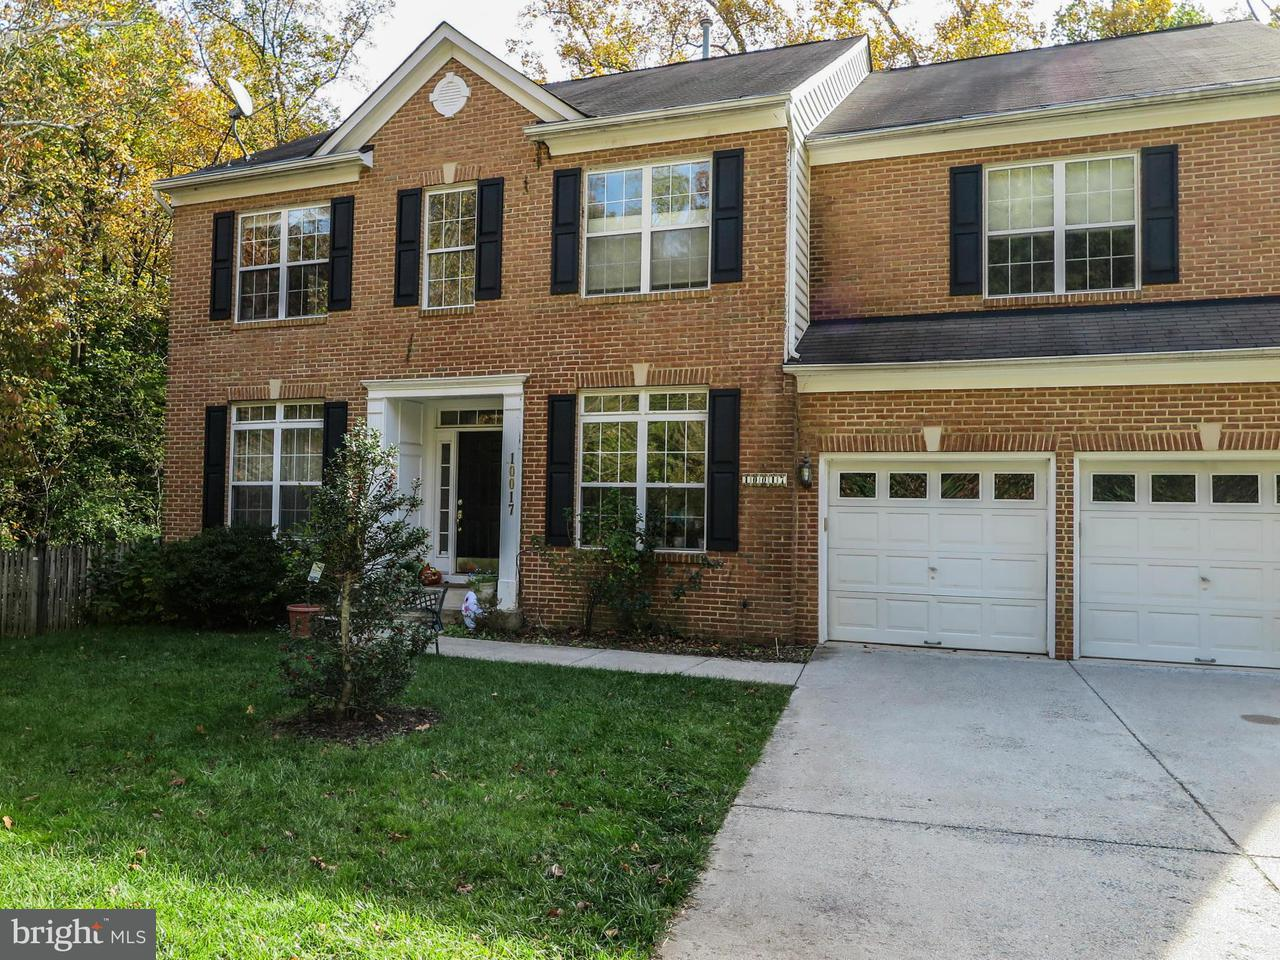 Single Family Home for Sale at 10017 Brunswick Avenue 10017 Brunswick Avenue Silver Spring, Maryland 20910 United States